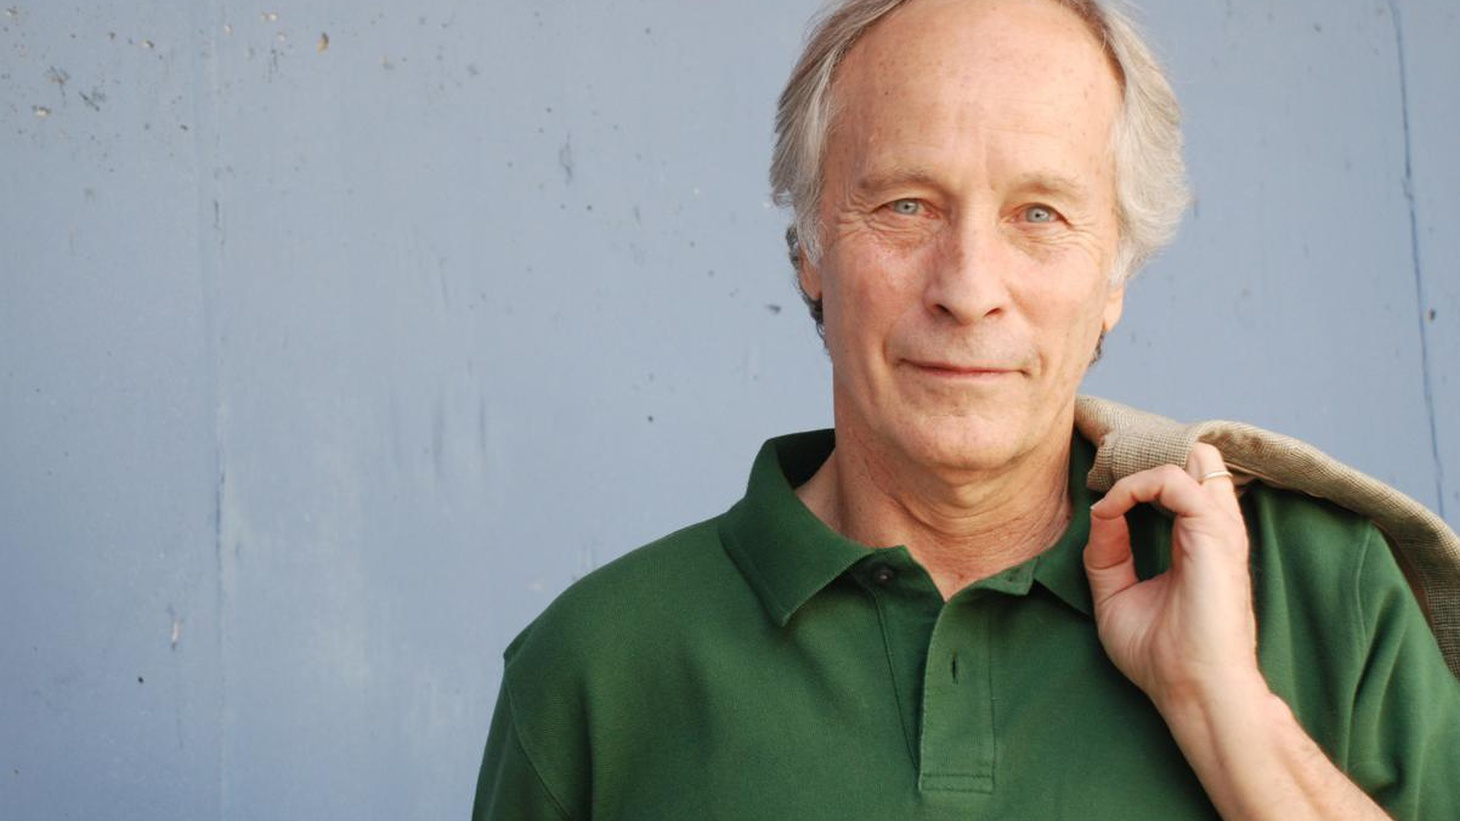 The first of a two-part conversation about Richard Ford's seventh novel, the powerful story of a teenager, a bank robbery and life's contradictory experiences.